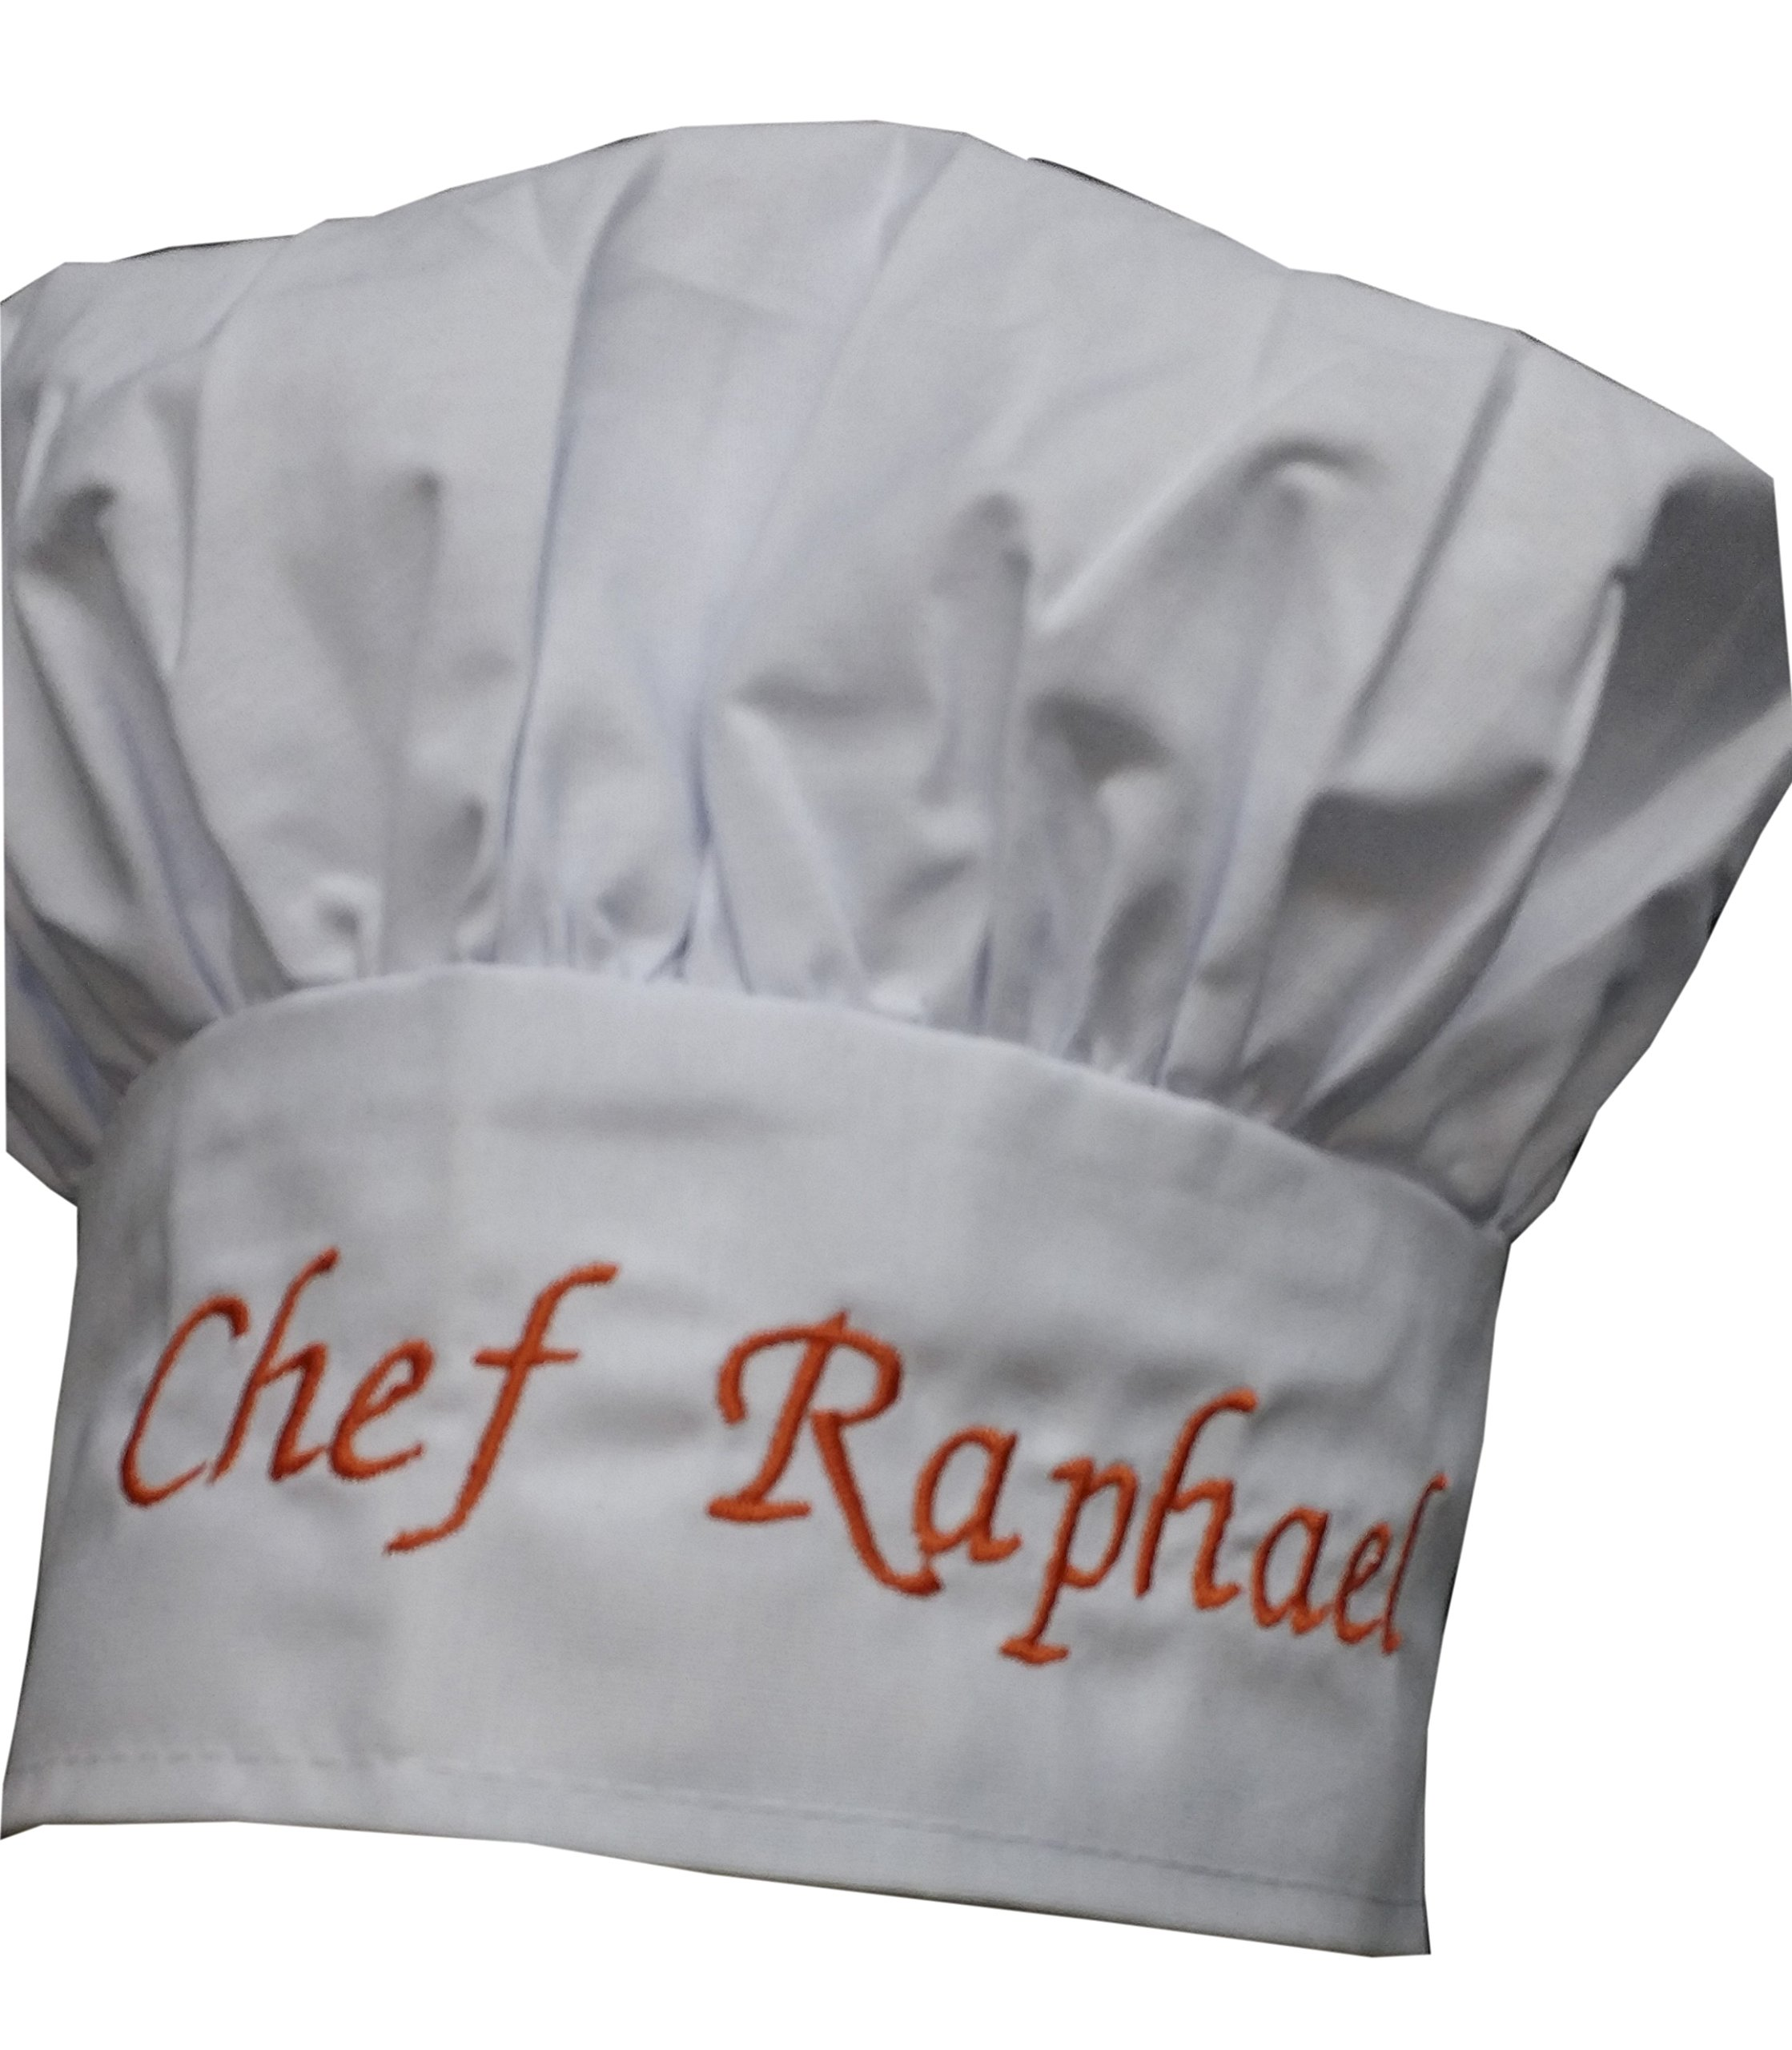 Personalized Chef Hat Custom Name - Size - Color - Font - Thread - Beautiful Makes a Great GIFT KIDS CHILD ADULT